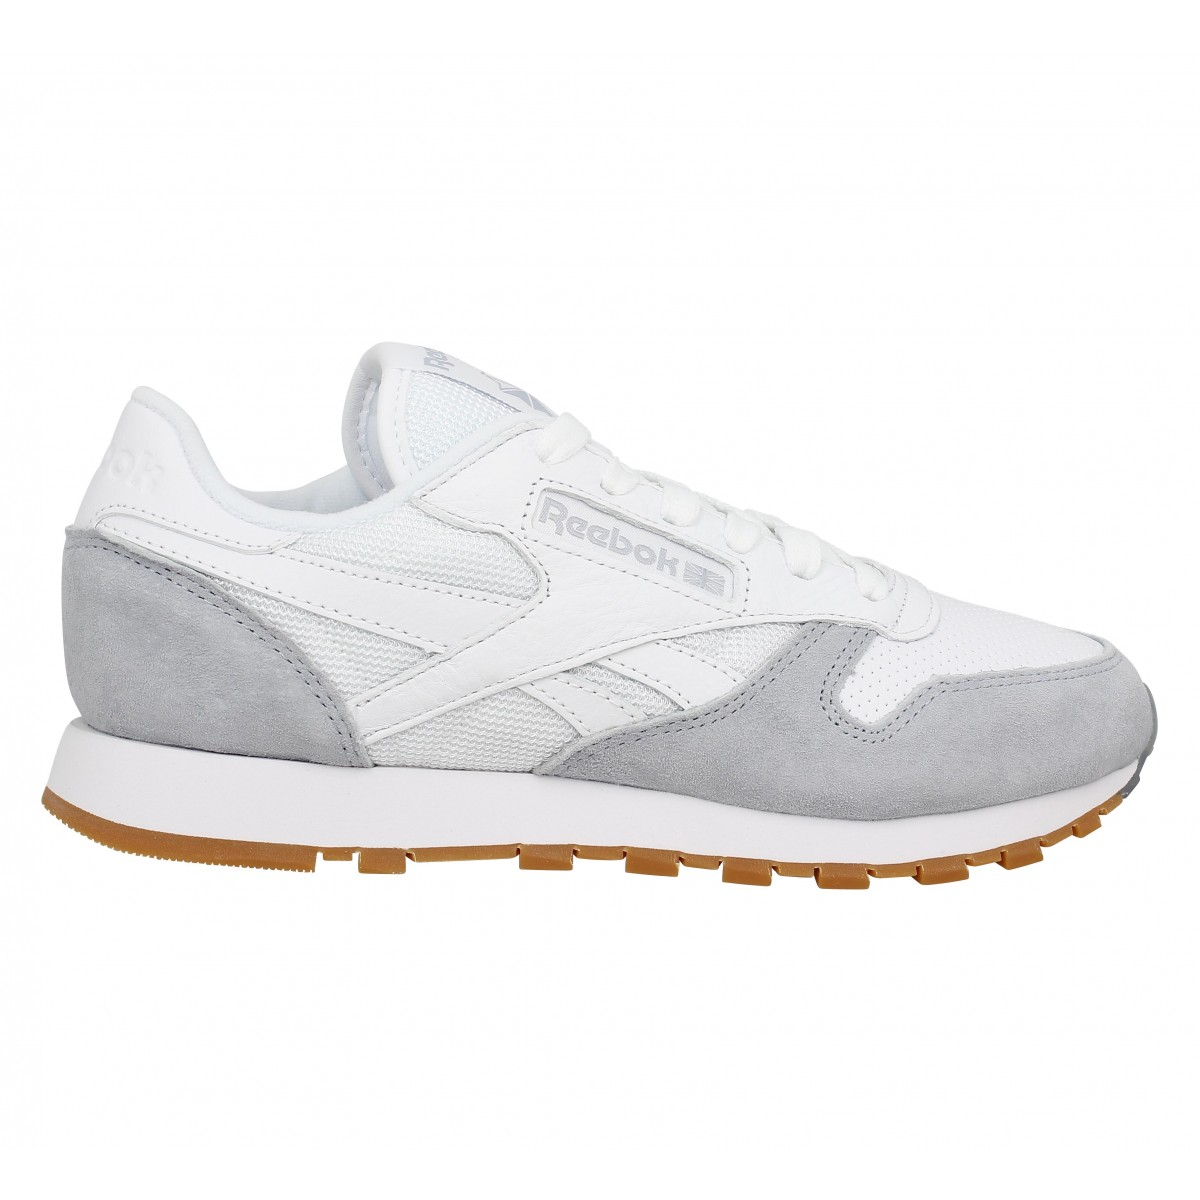 Chaussures Reebok GL grises Casual unisexe 1FJjxn